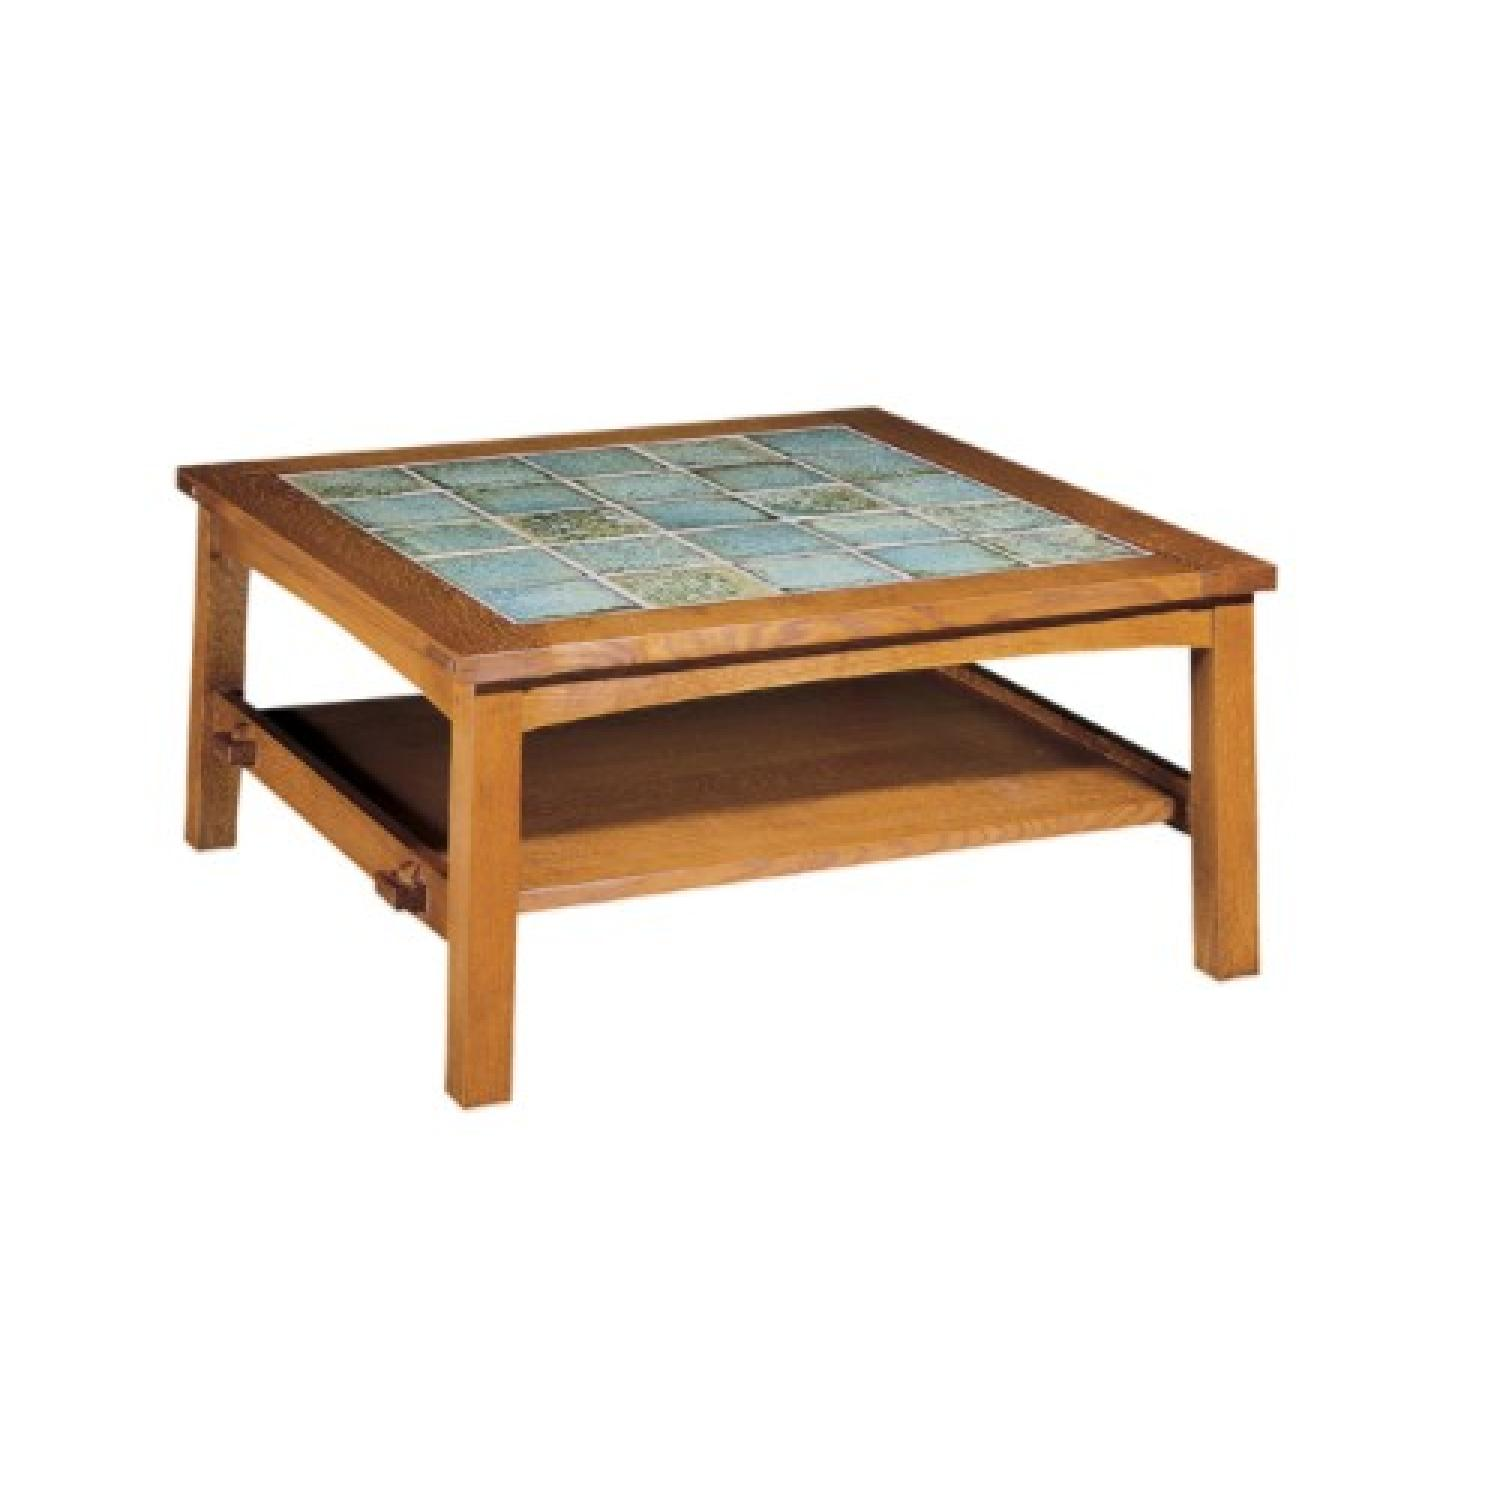 Stickley Cherry U0026 Tile Coffee Table ...